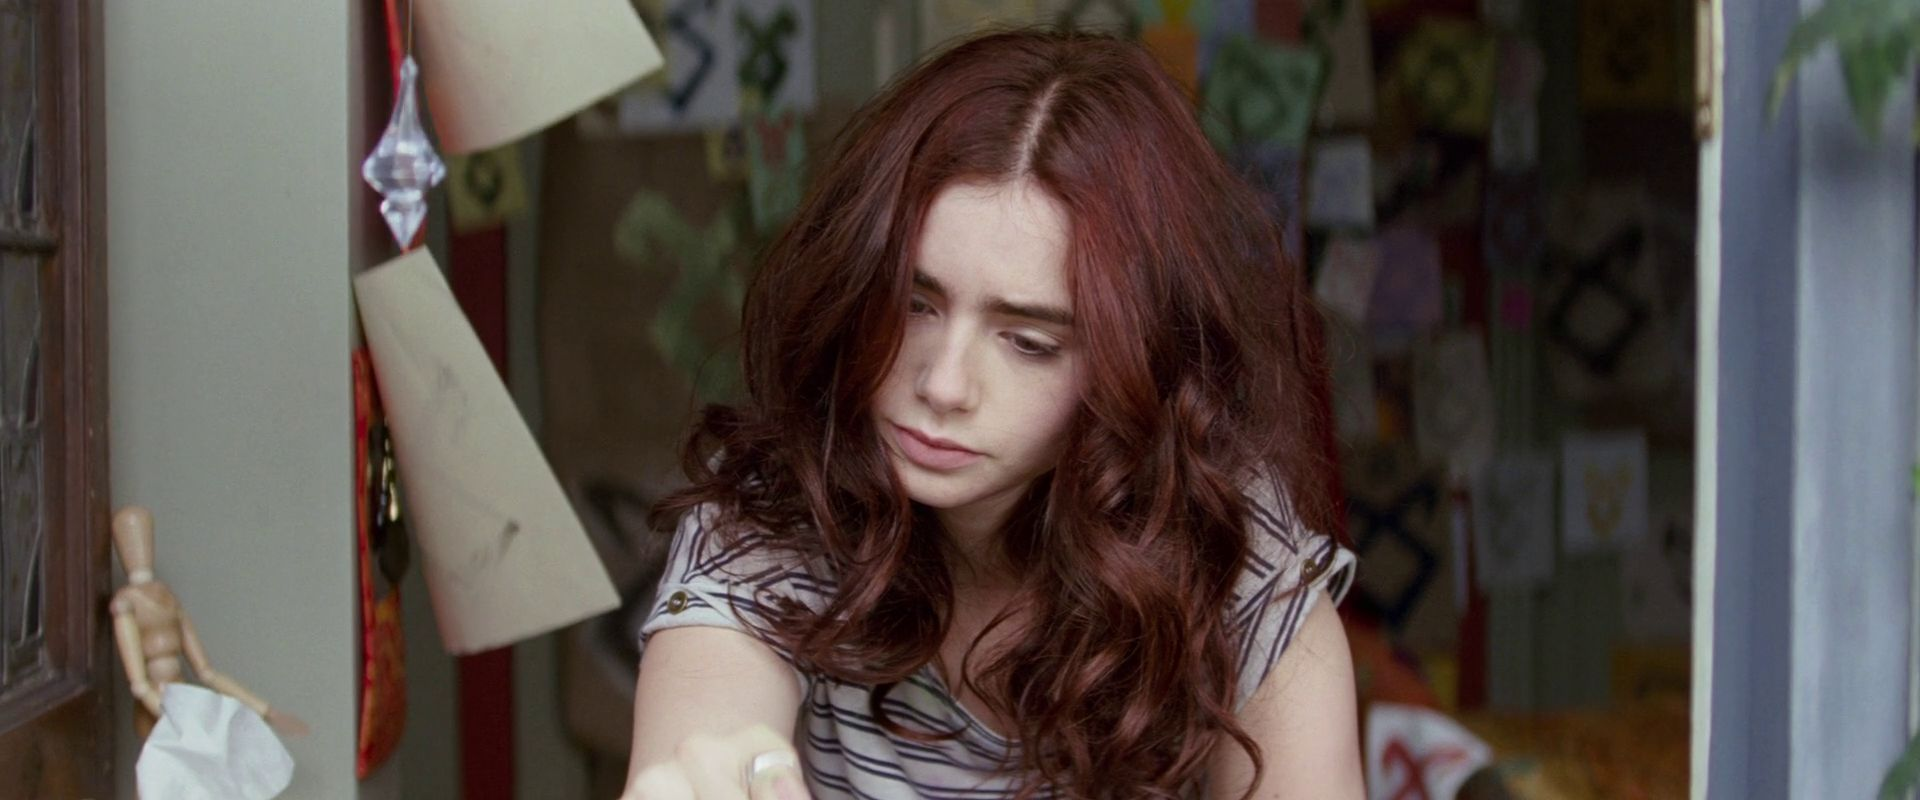 Clary Fray Screencaps - City Of Bones Movie Photo ...